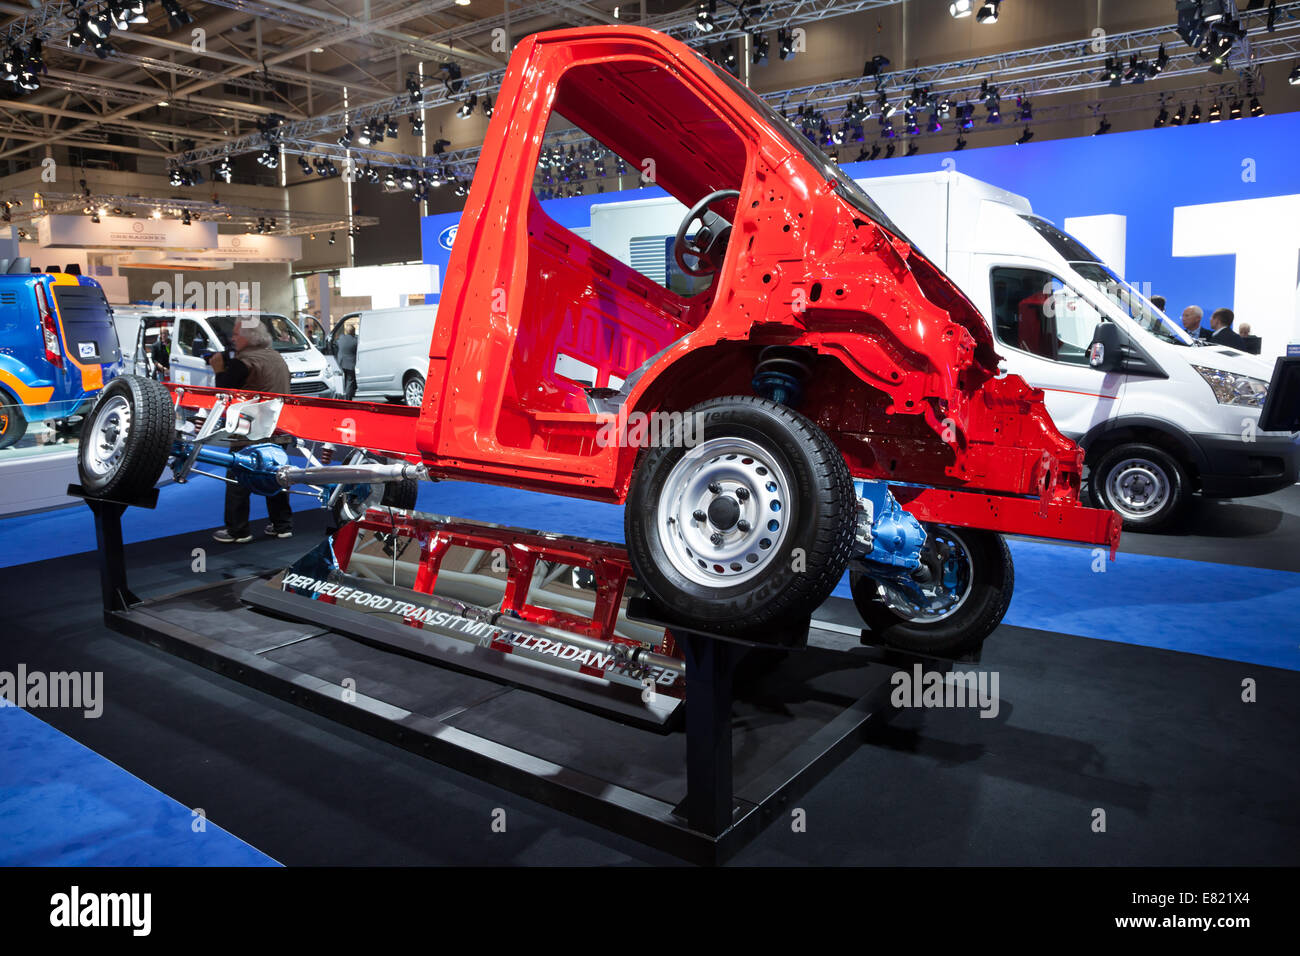 Ford 4x4 Stock Photos & Ford 4x4 Stock Images - Alamy